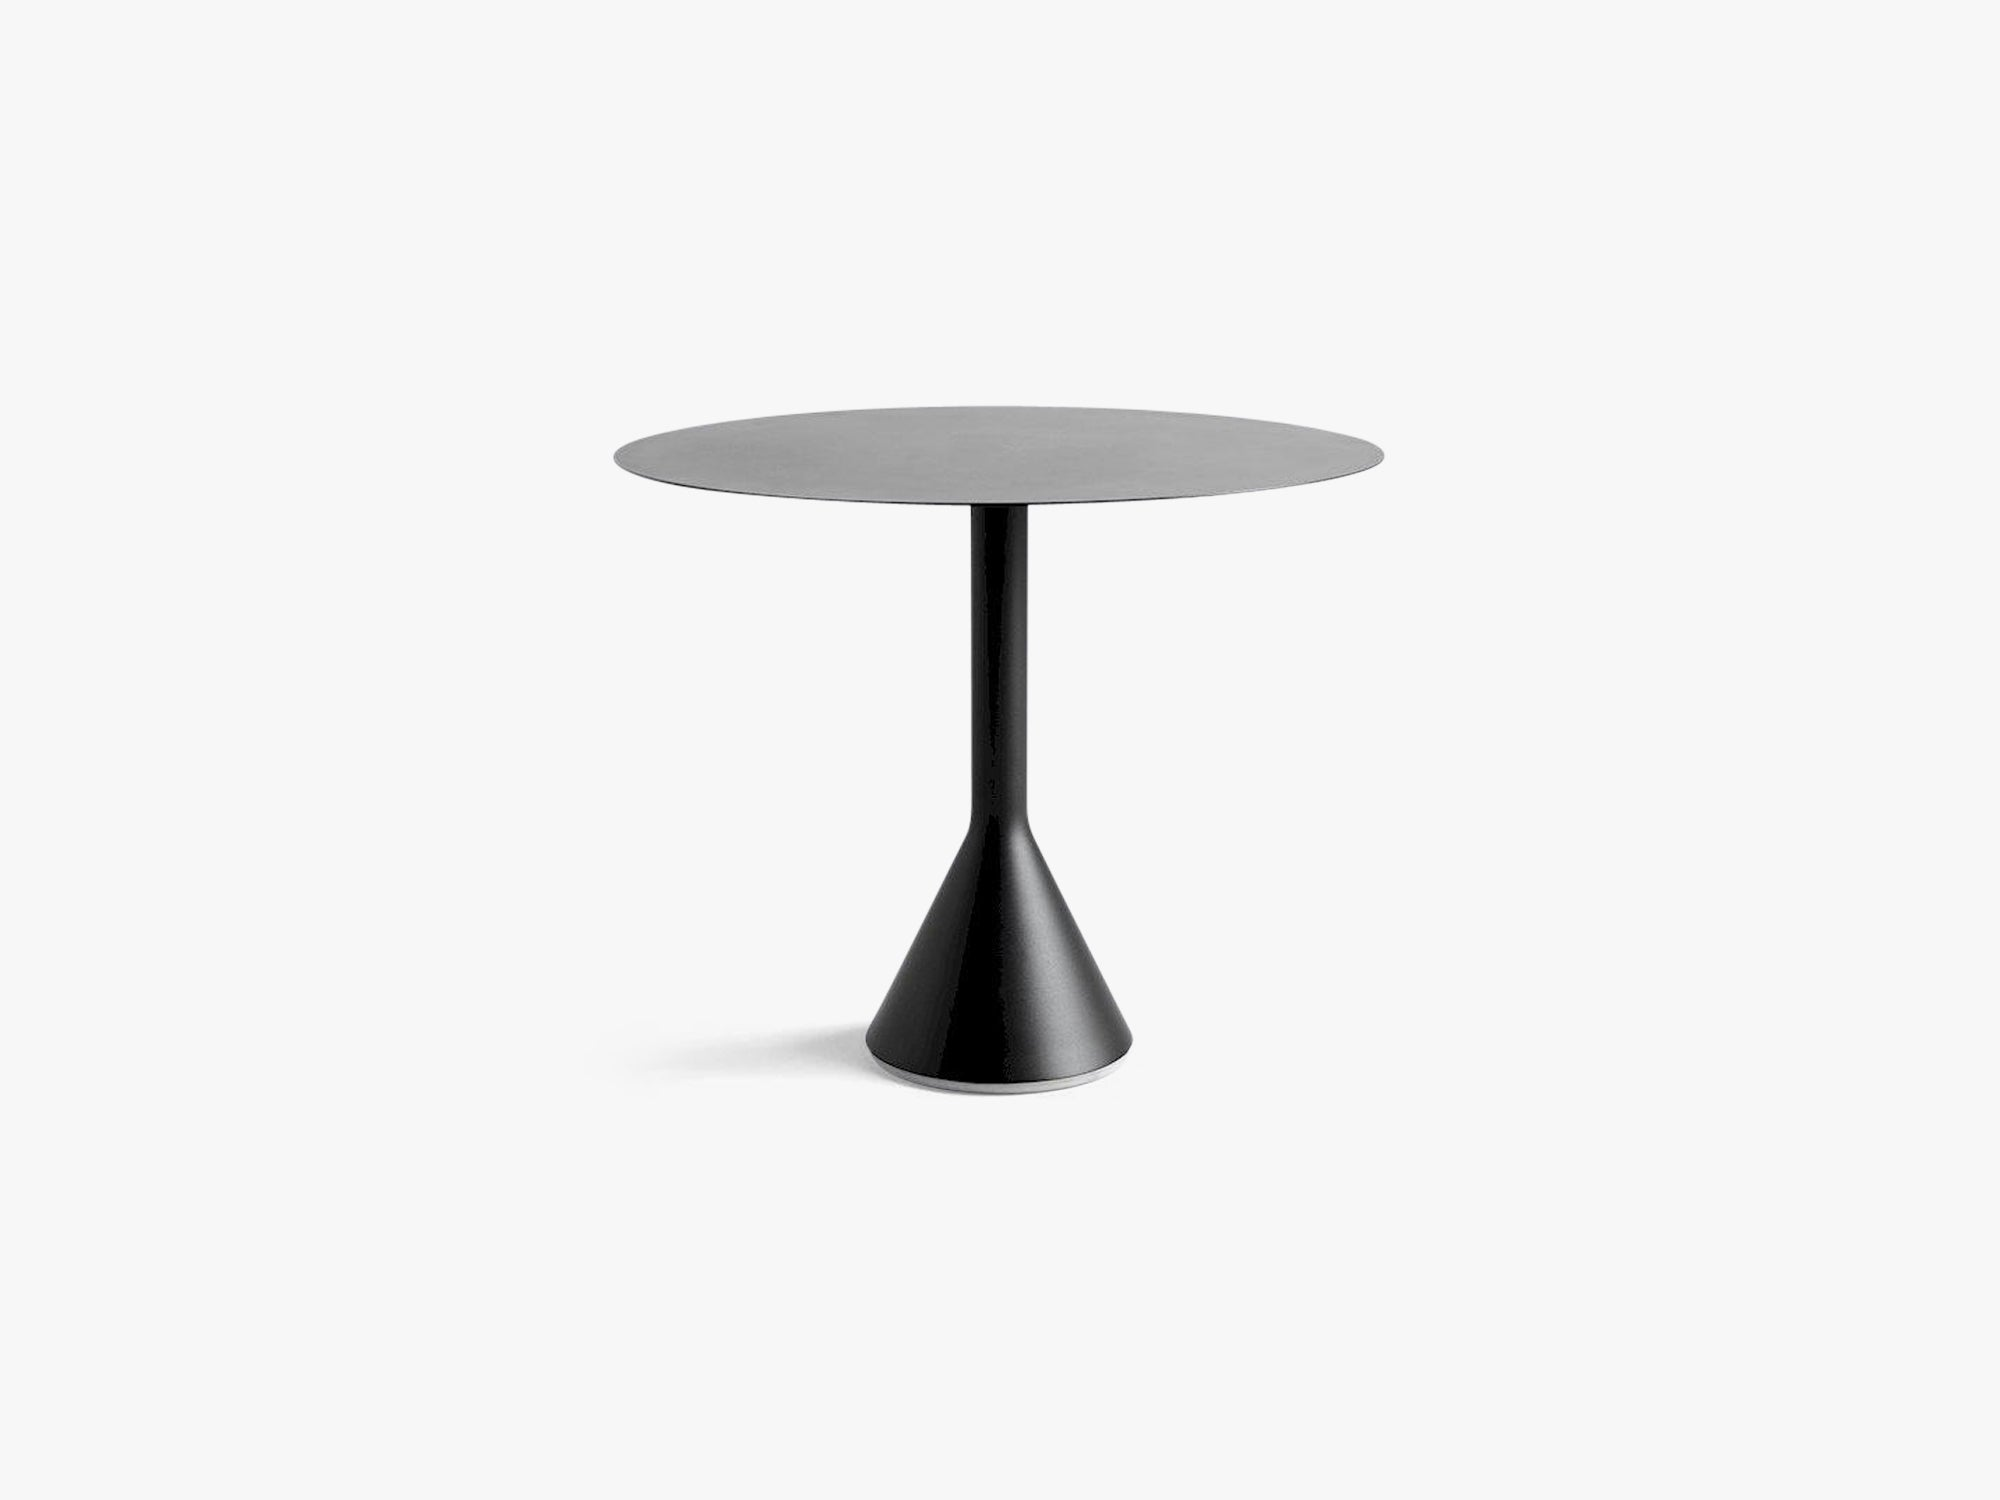 Palissade Cone Table - Round Large, Anthracite fra HAY